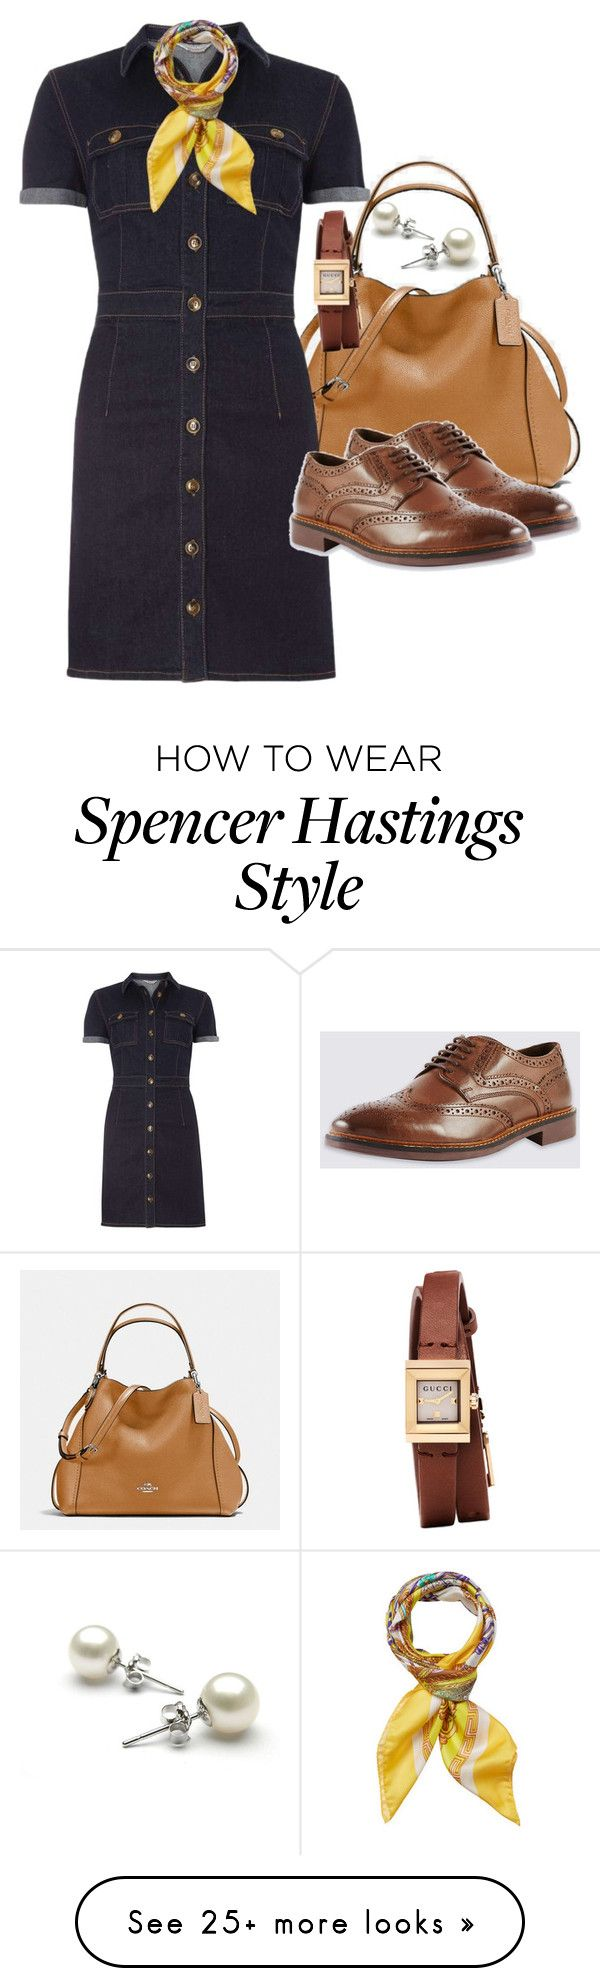 """""""Spencer Hastings Inspired"""" by smirnova-varya on Polyvore featuring Coach, Dorothy Perkins, Versace, Gucci, PrettyLittleLiars, pll and spencerhastings"""